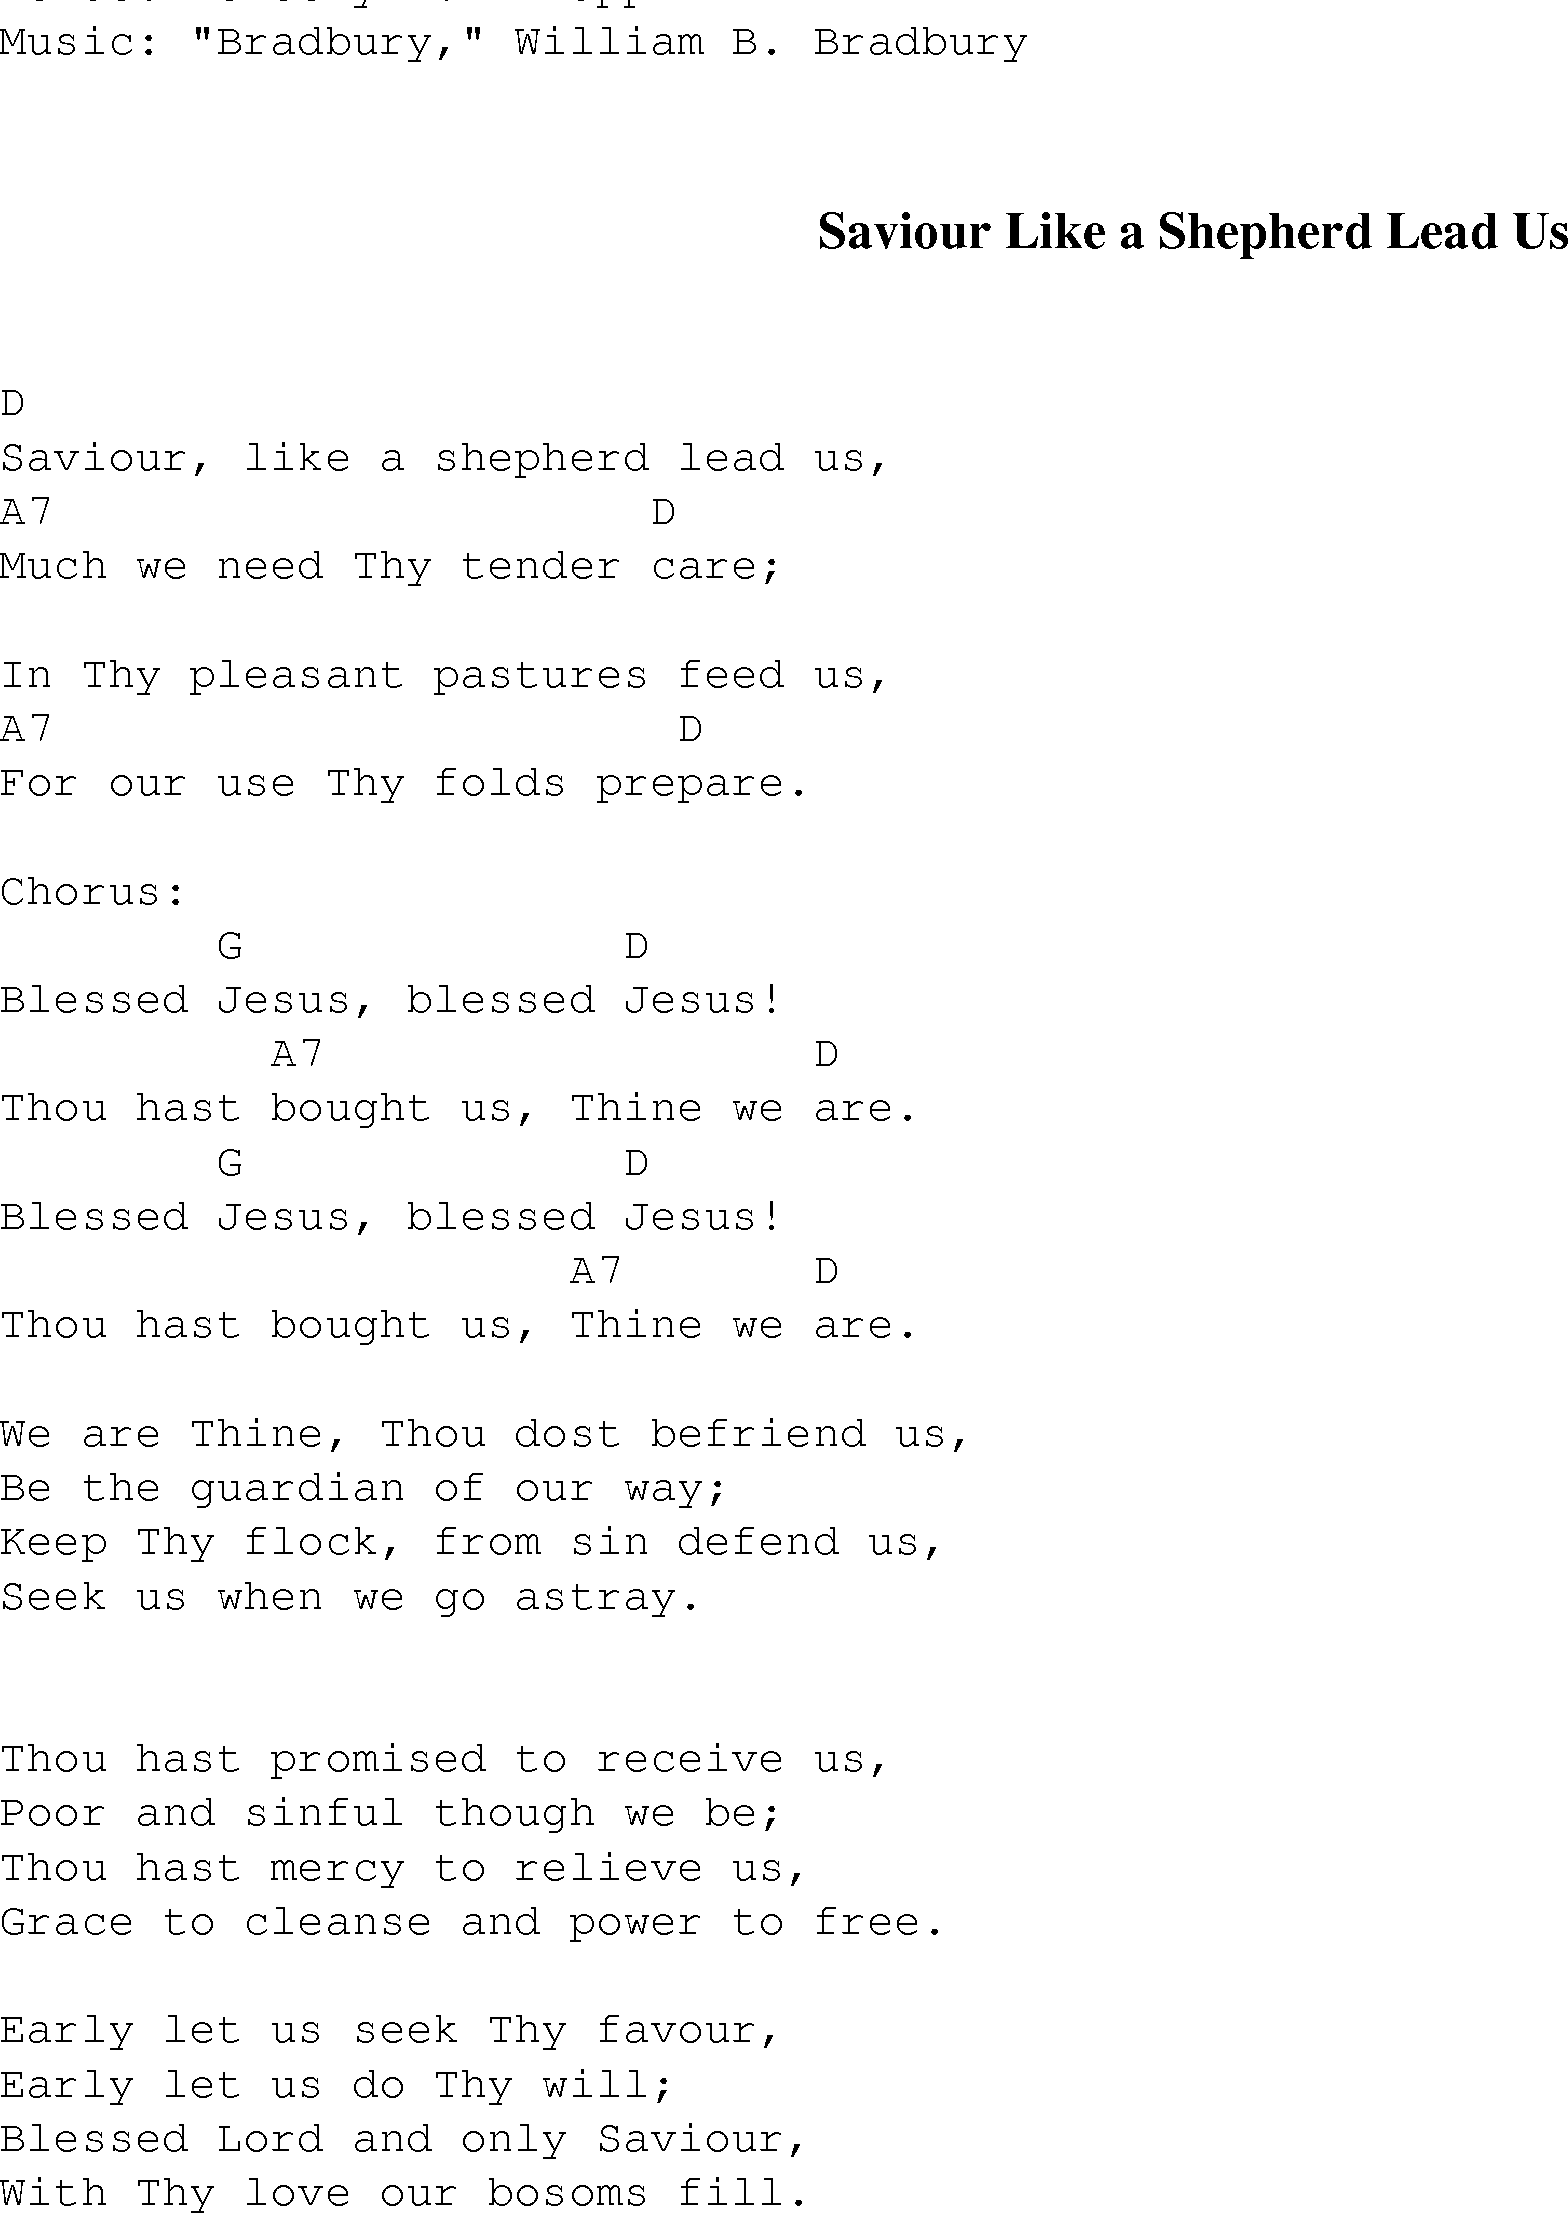 Saviour Like A Shepherd Lead Us Christian Gospel Song Lyrics And